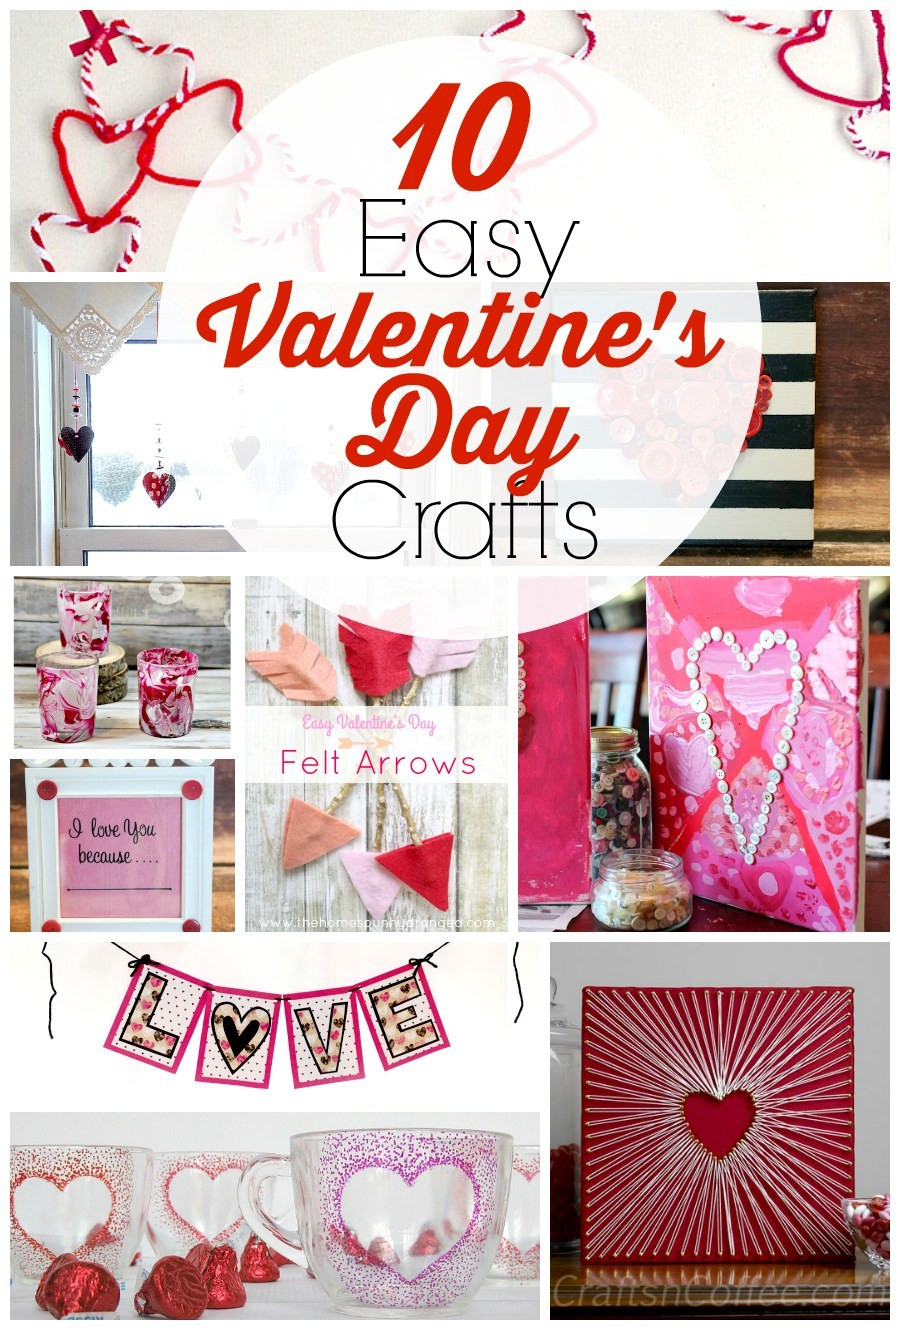 Best ideas about Valentines Craft Ideas For Adults . Save or Pin 10 Easy Valentine's Day Crafts for Adults Now.